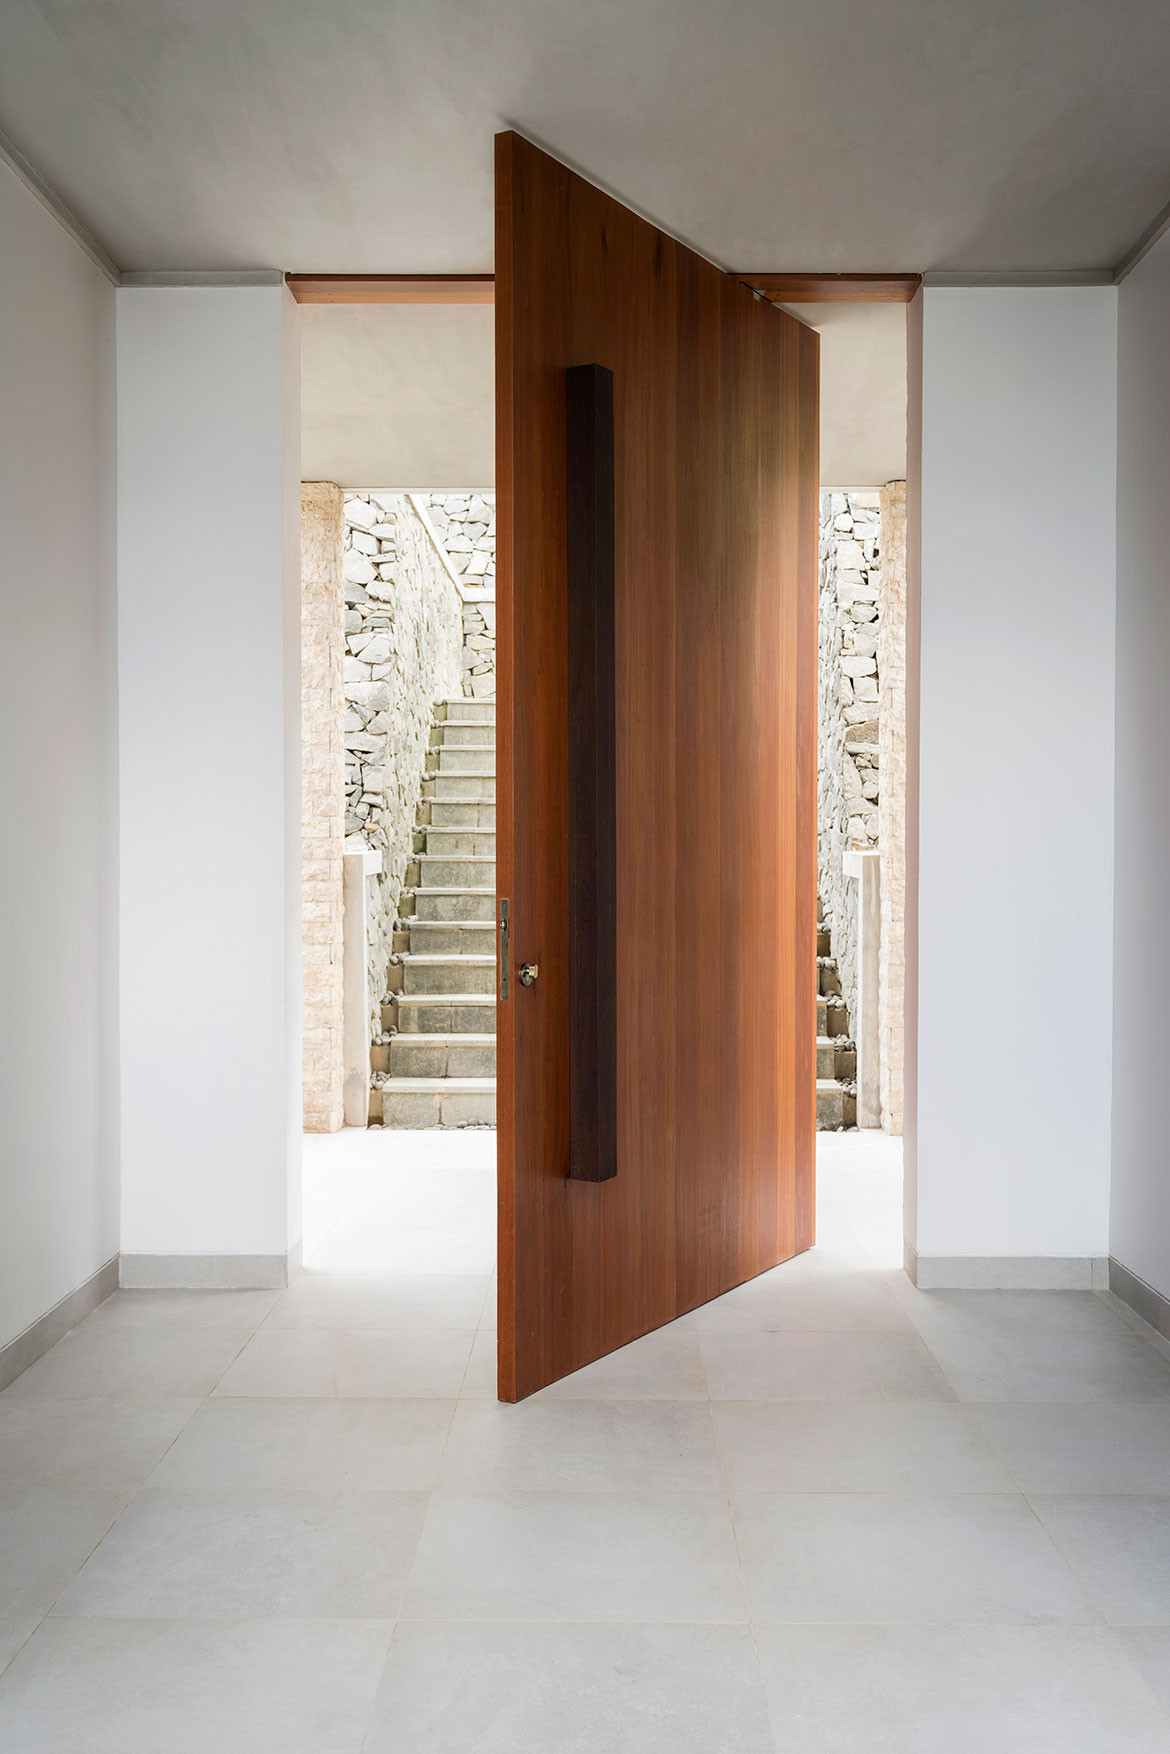 Maleo Residence Mitchel Squires Associates doorway